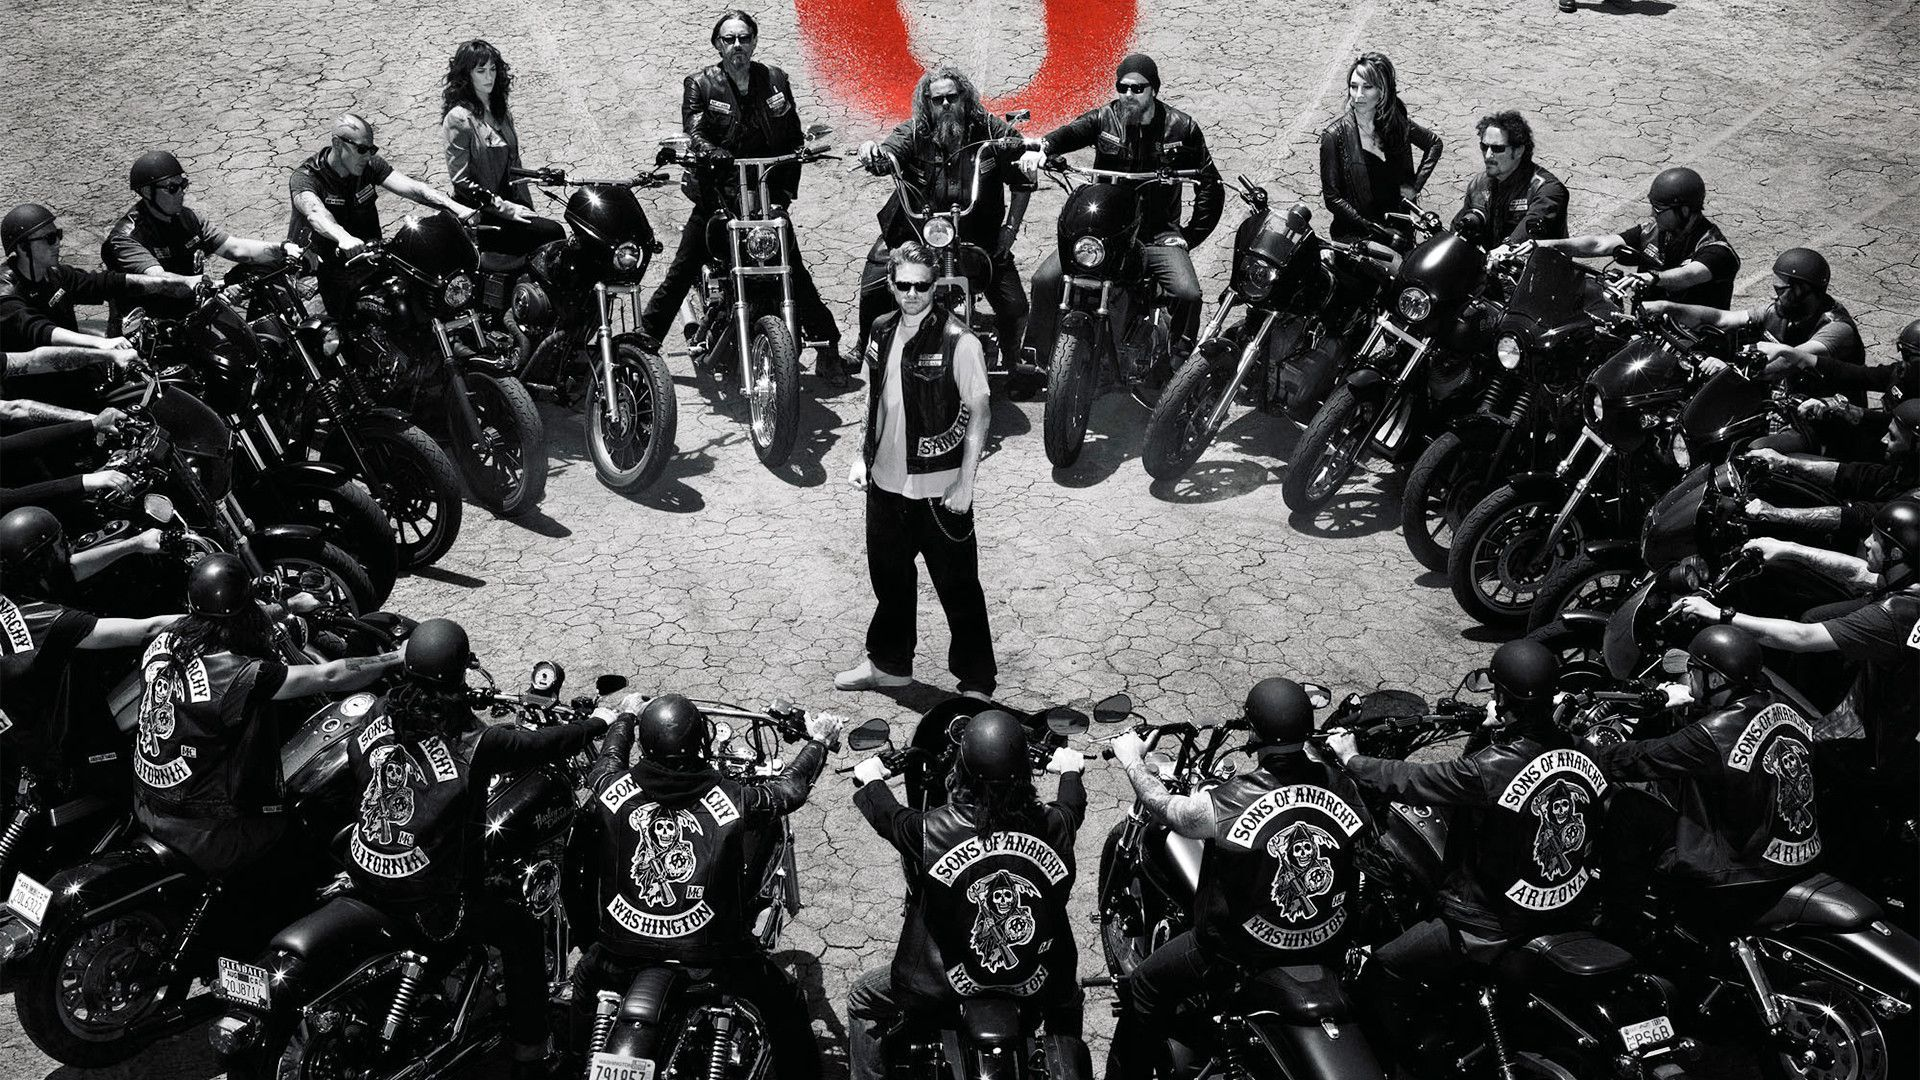 Sons Of Anarchy Hd Wallpapers Hd Wallpapers Sons Of Anarchy